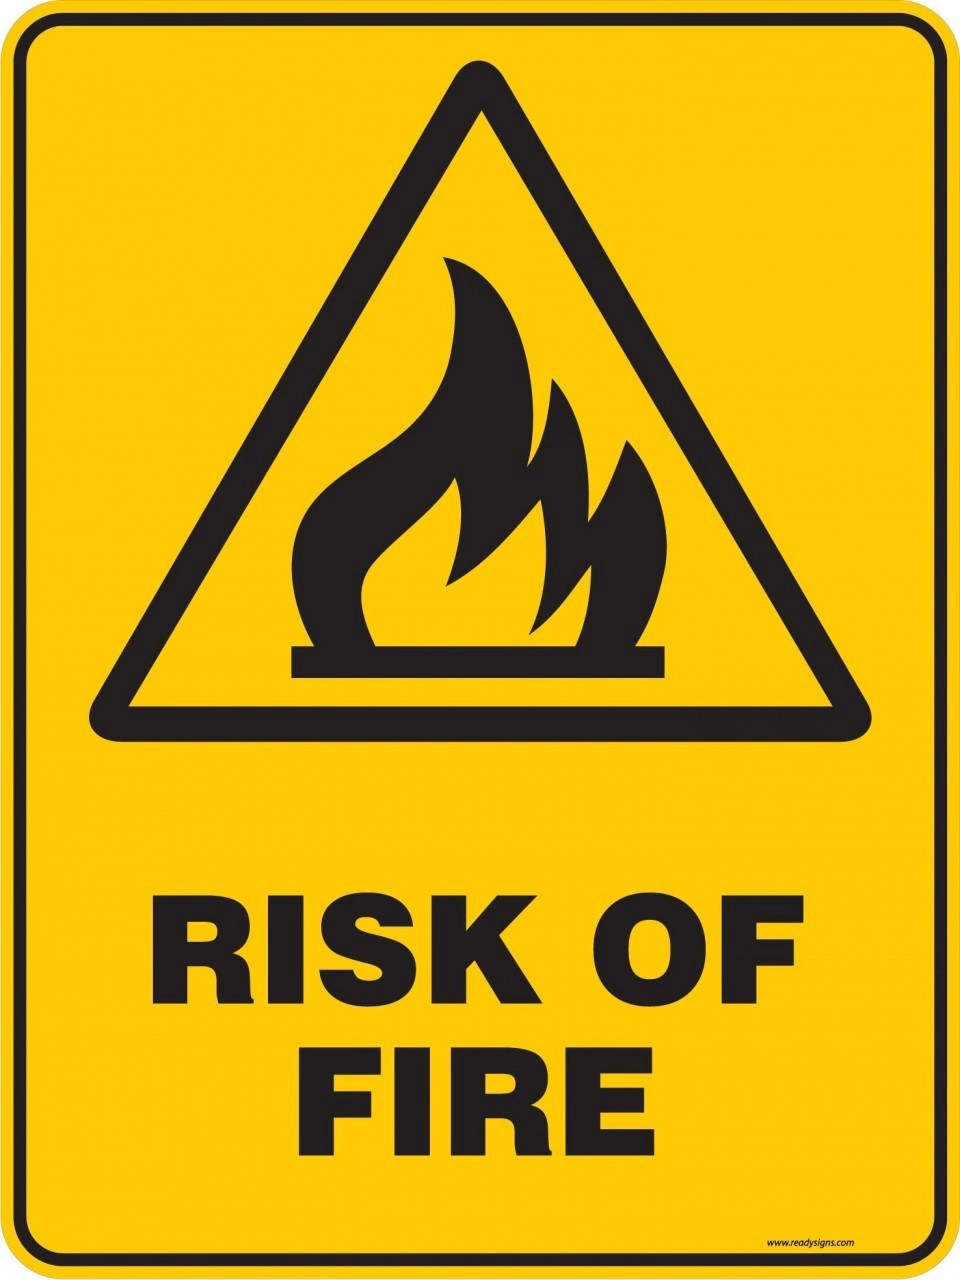 Warning Sign RISK OF FIRE Ready Signs